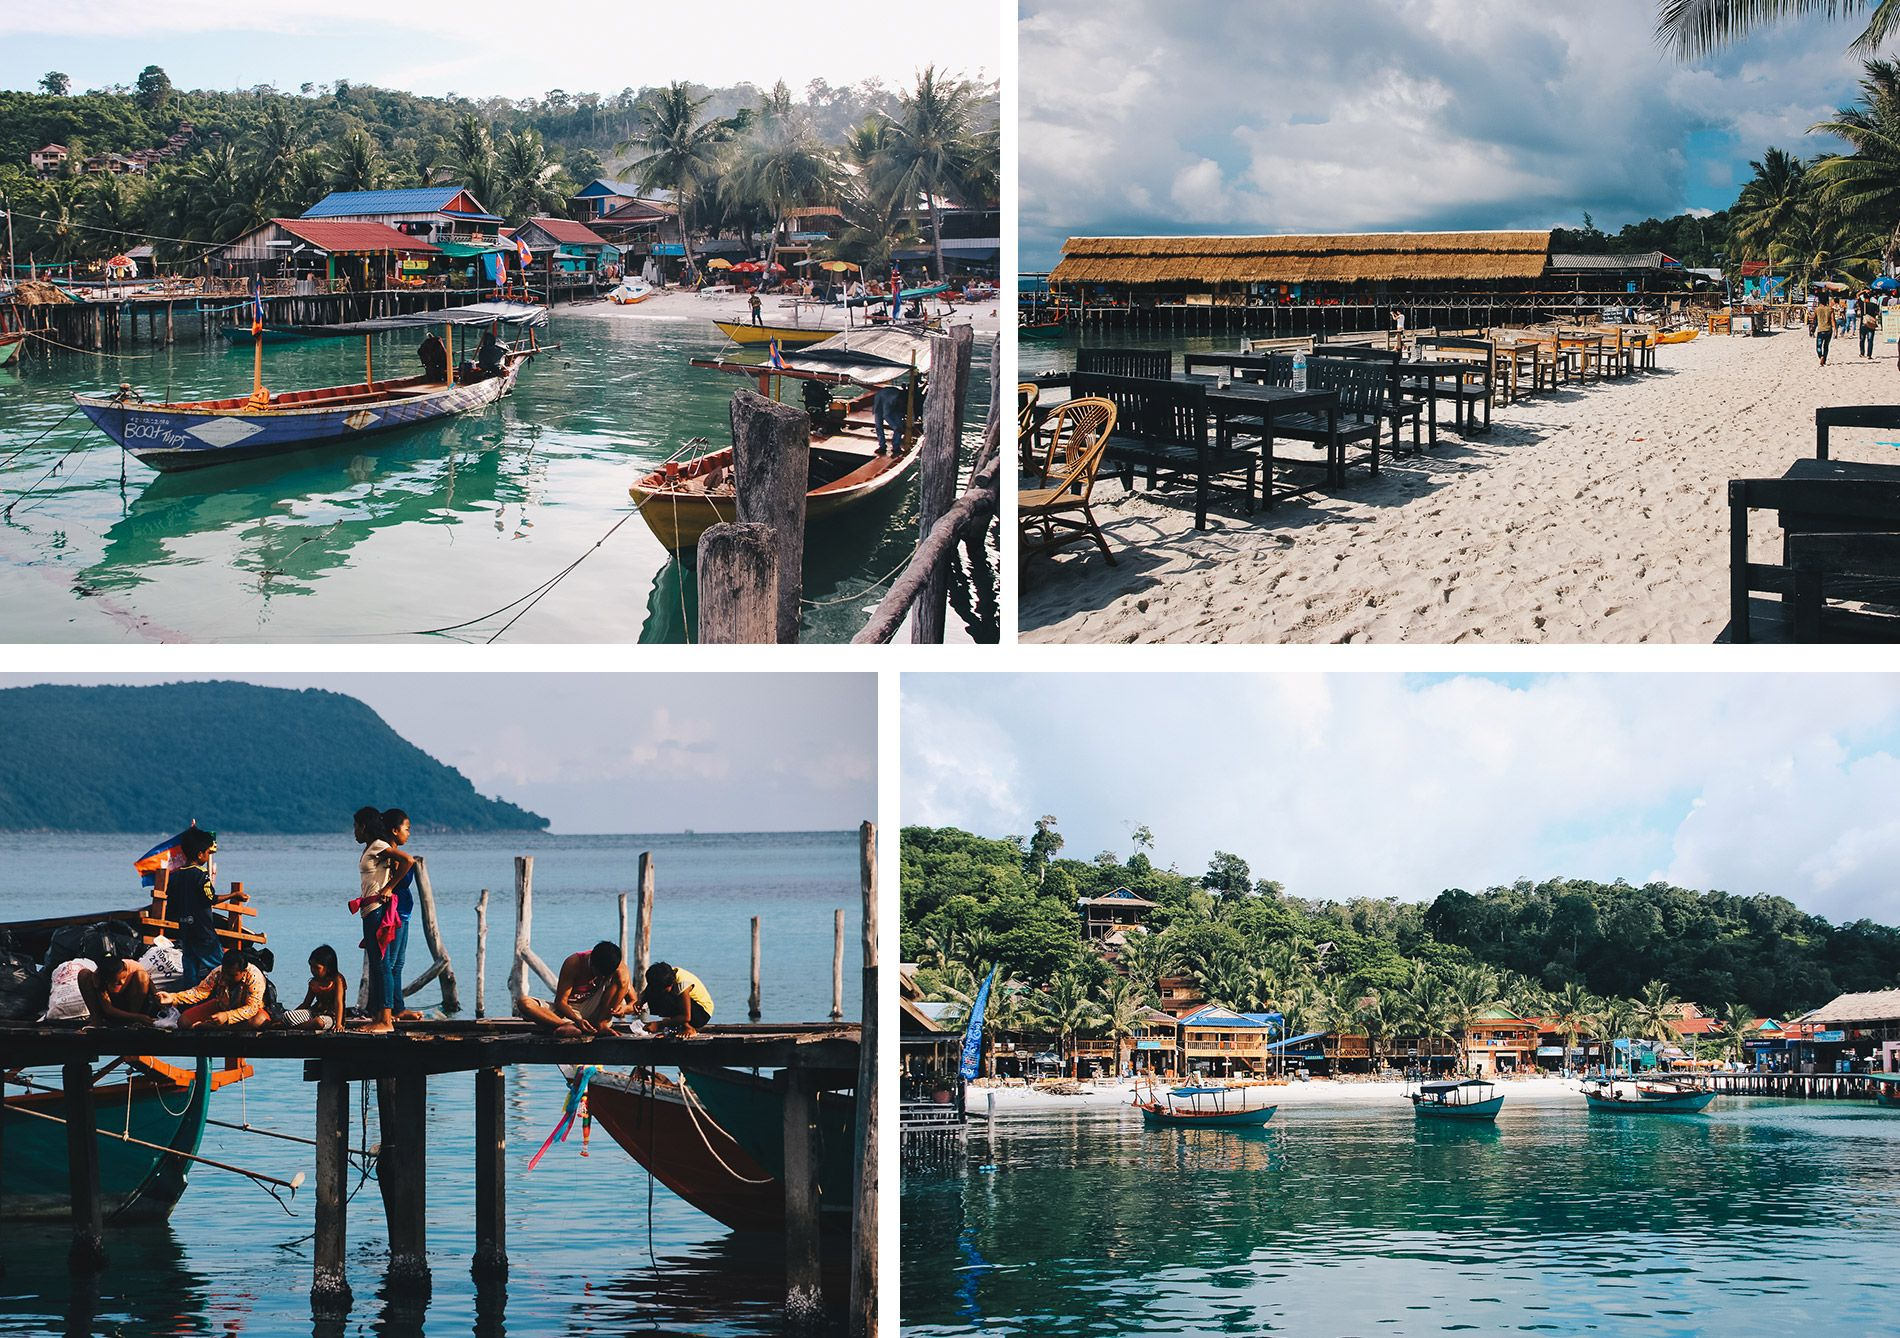 Cambodge | plage | koh rong